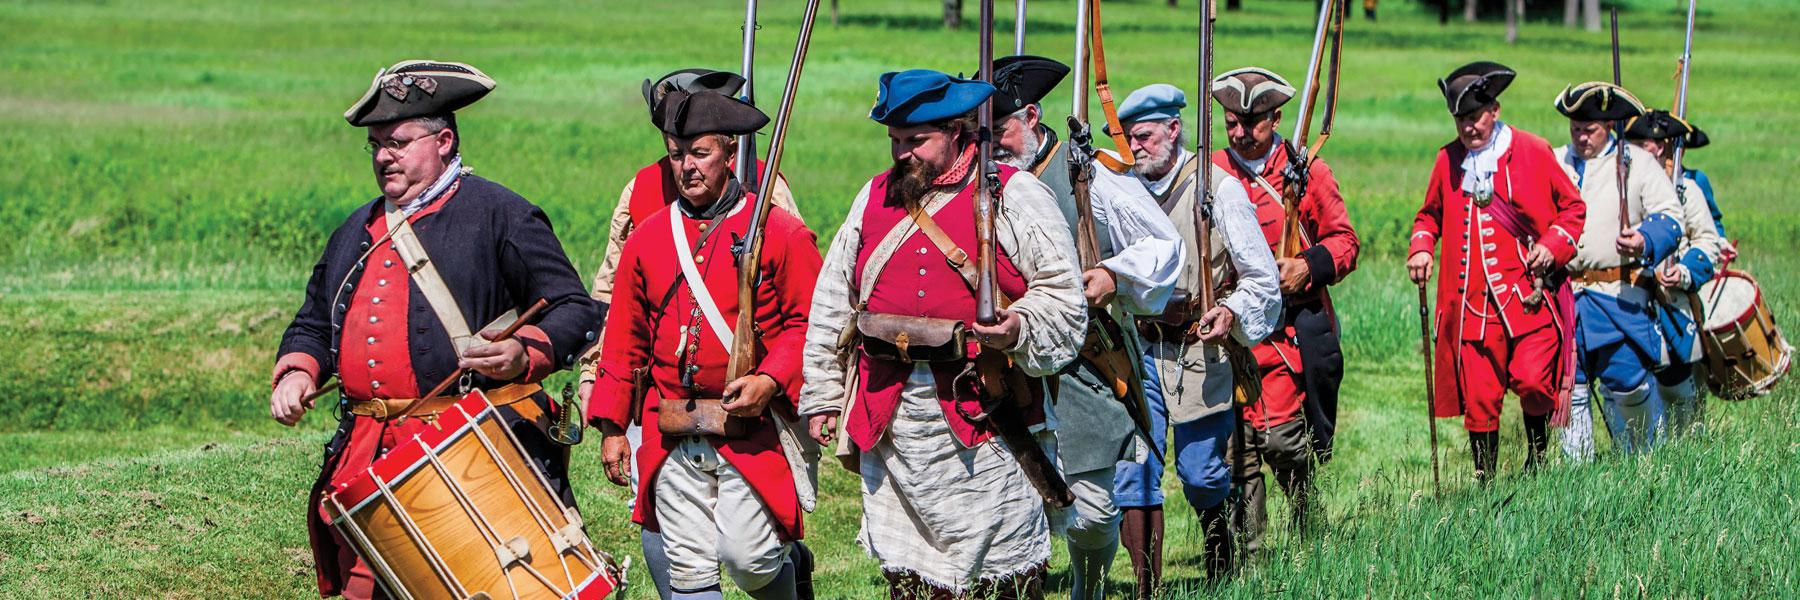 National Parks - Fort Necessity